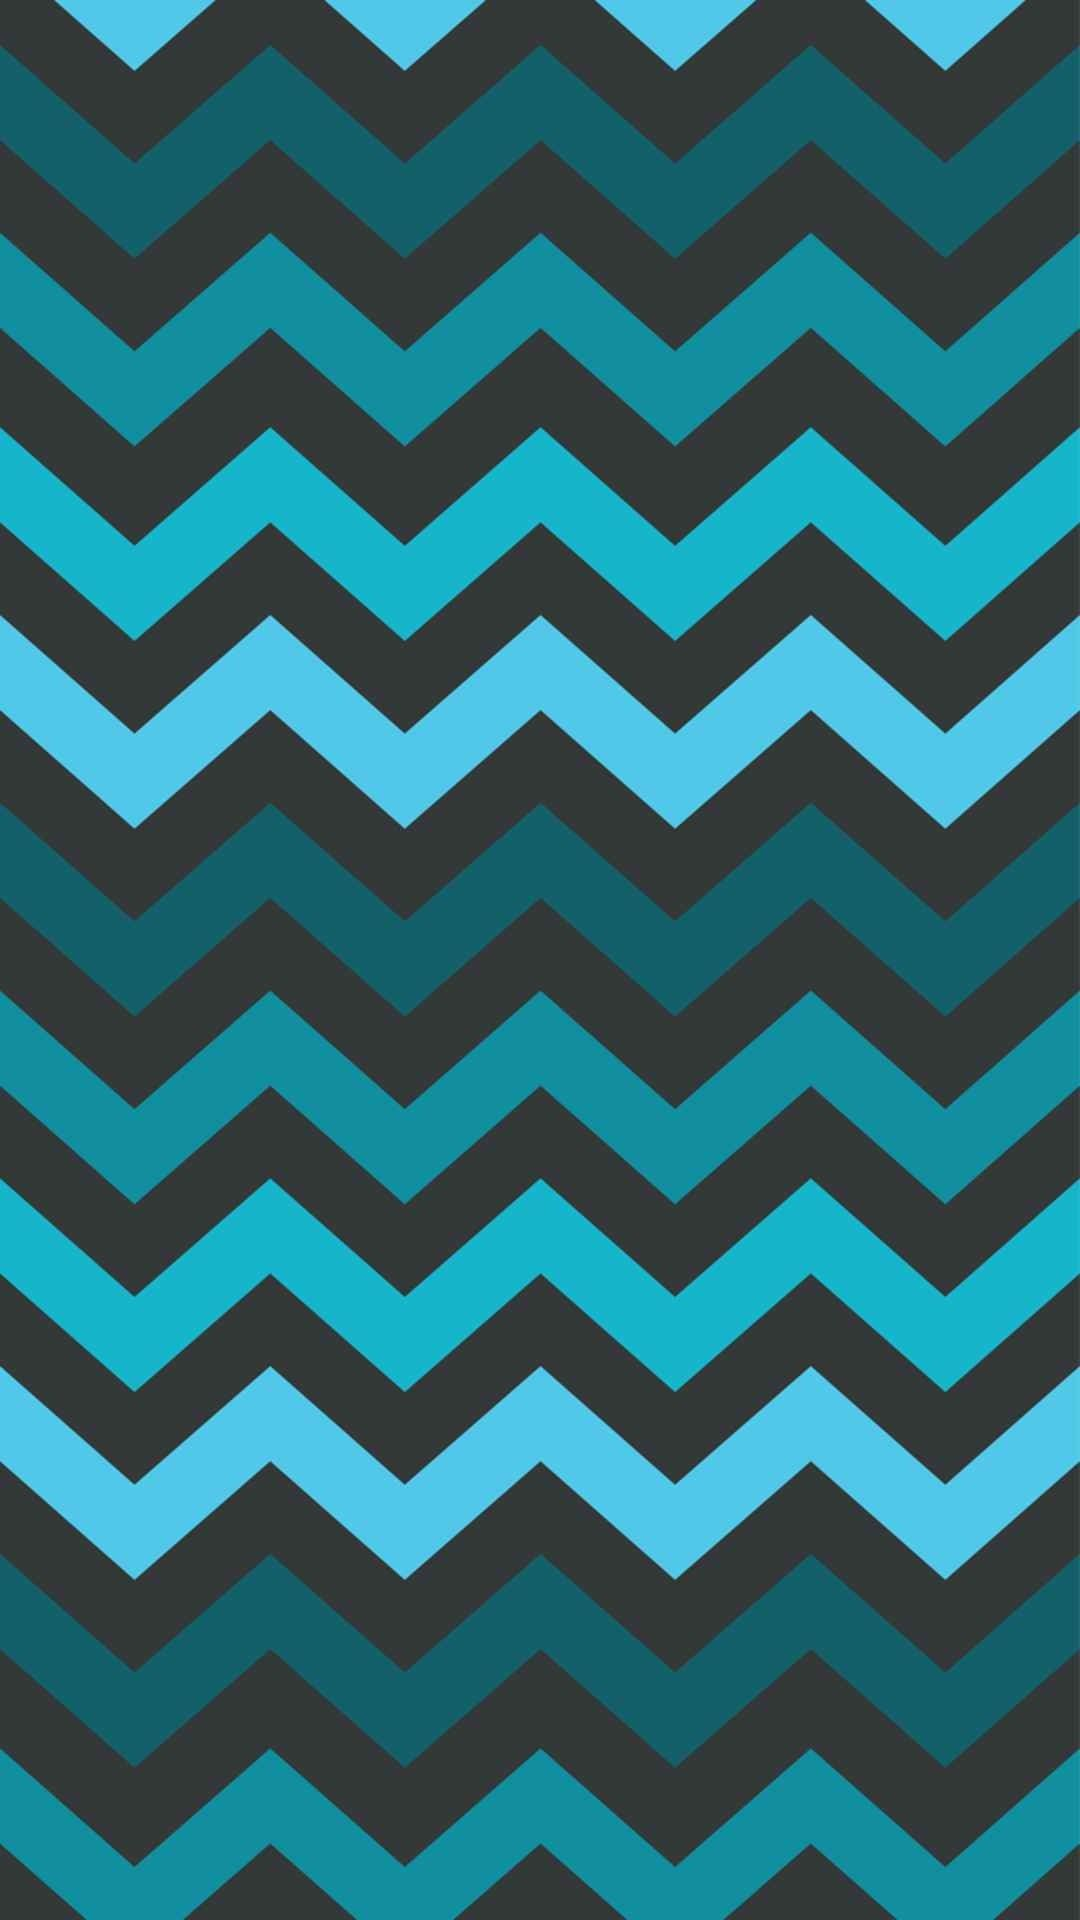 Best Zig zag lines pattern Wallpapers 8 Images 1080x1920